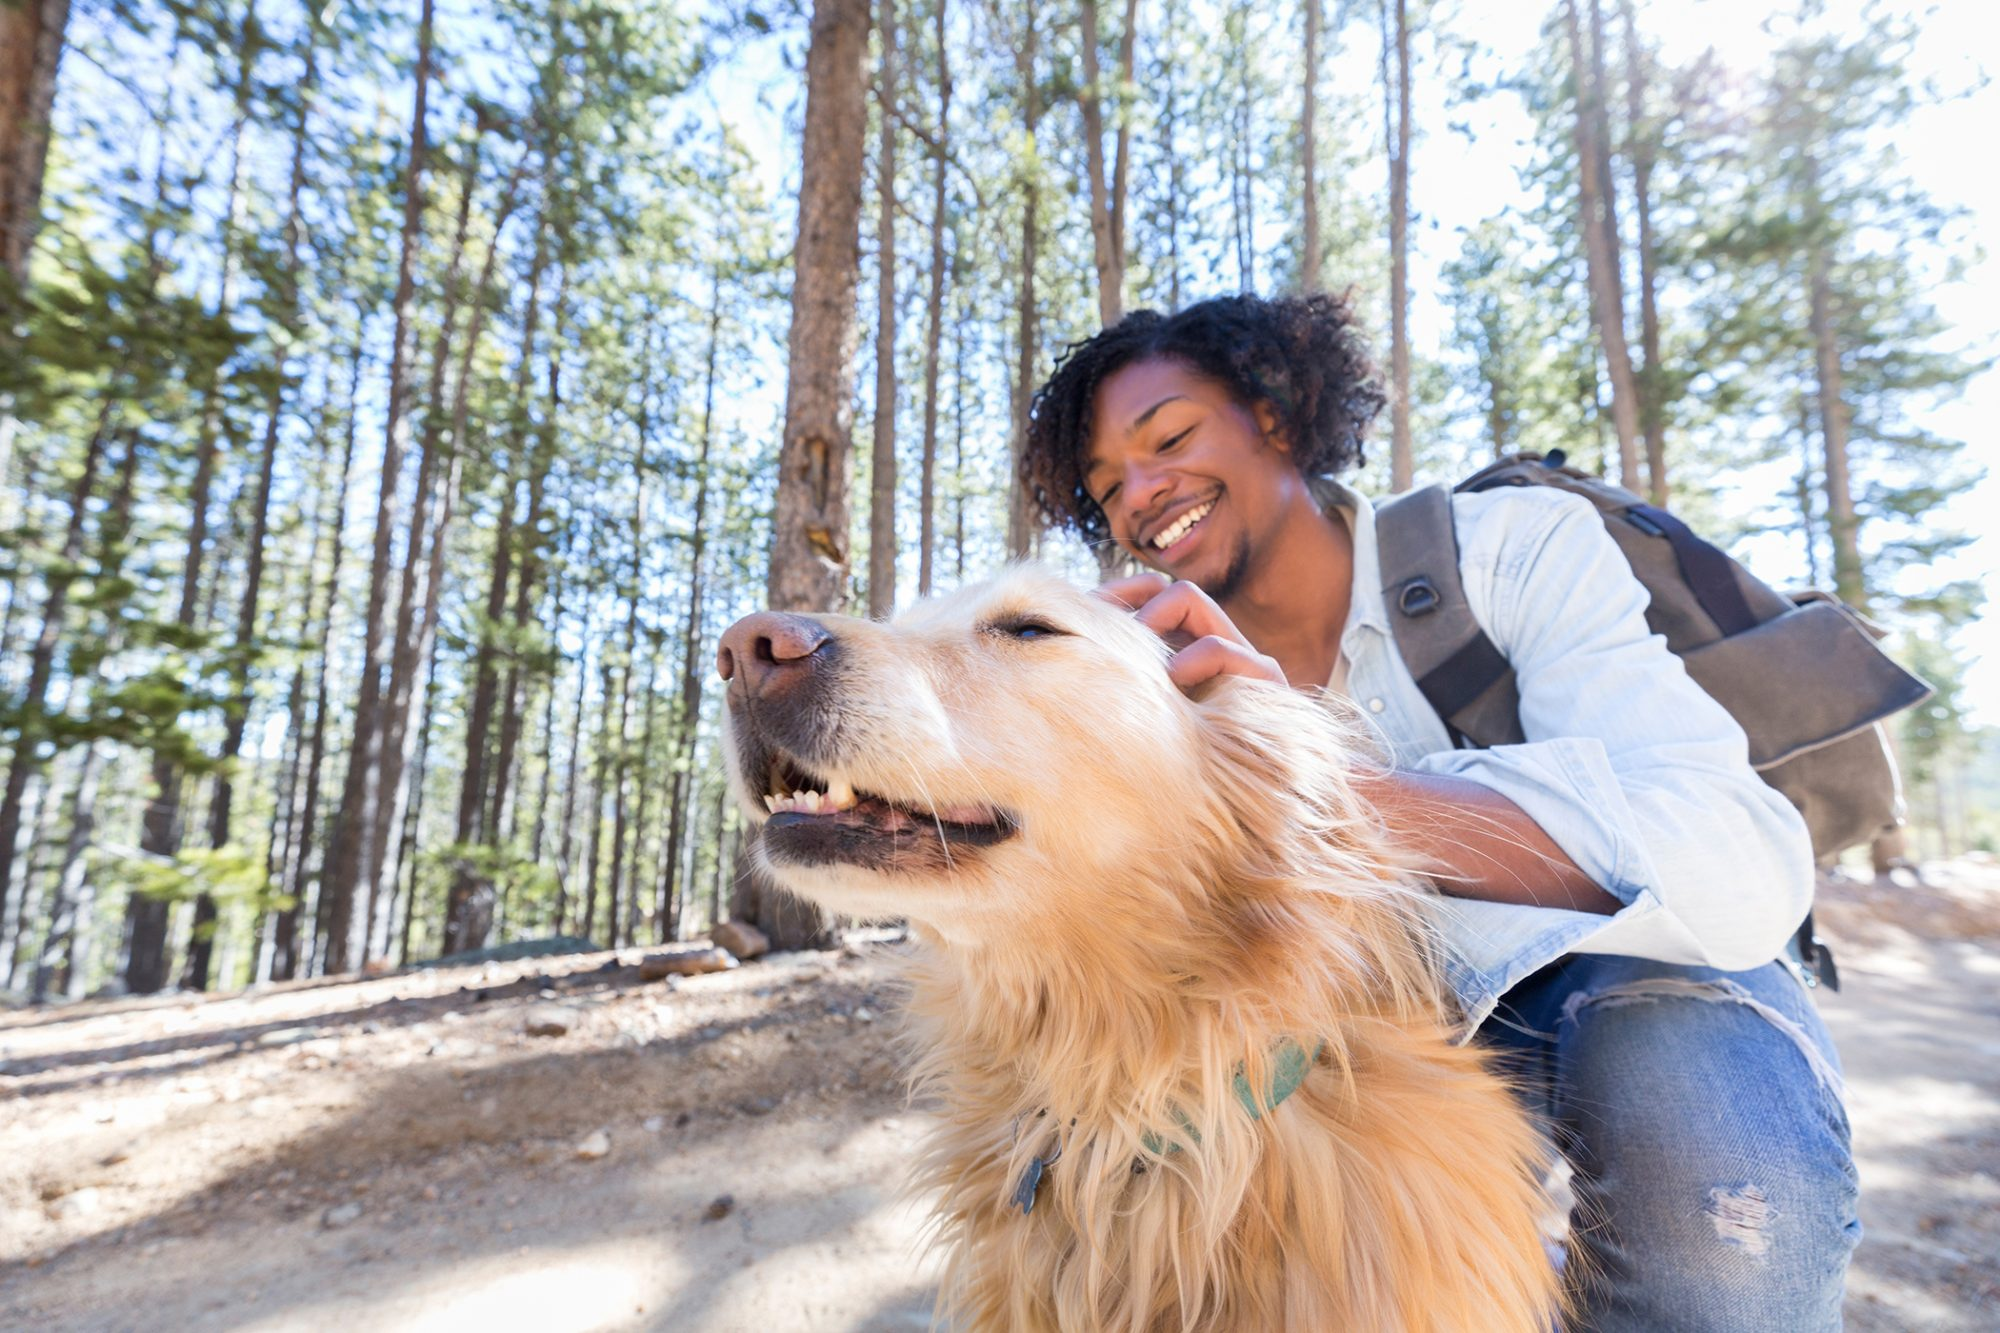 Shaggy blond dog gets pet on forest trail